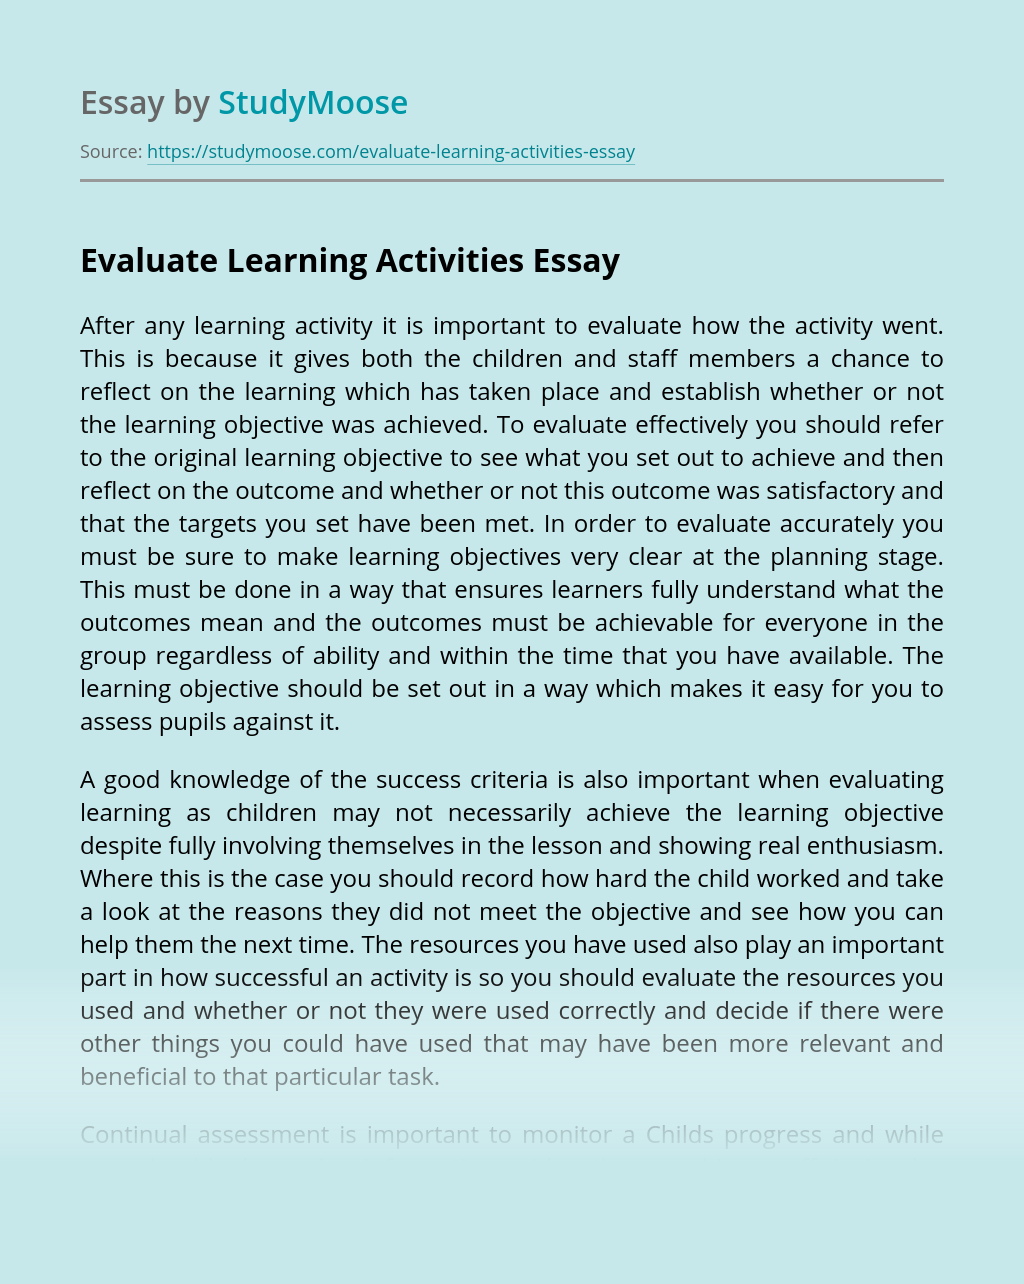 Evaluate Learning Activities